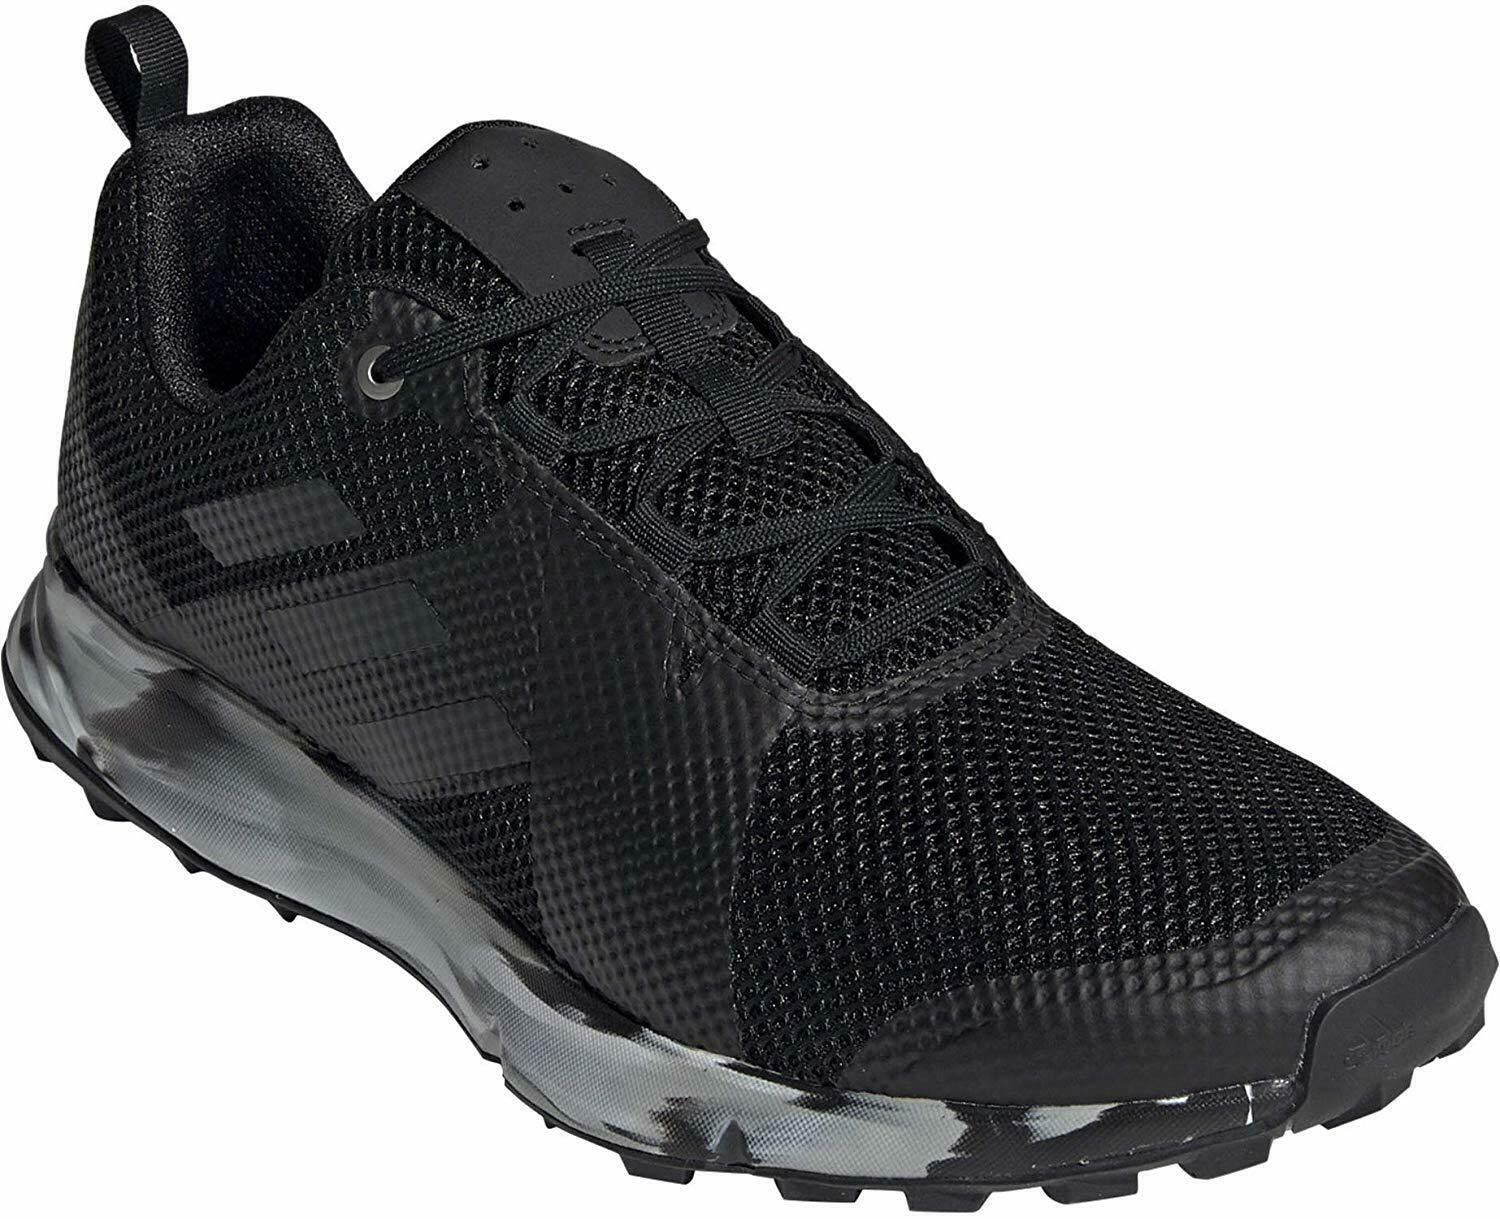 ADIDAS MENS OUTDOOR TERREX TWO SHOES BC0496 BLK WHT